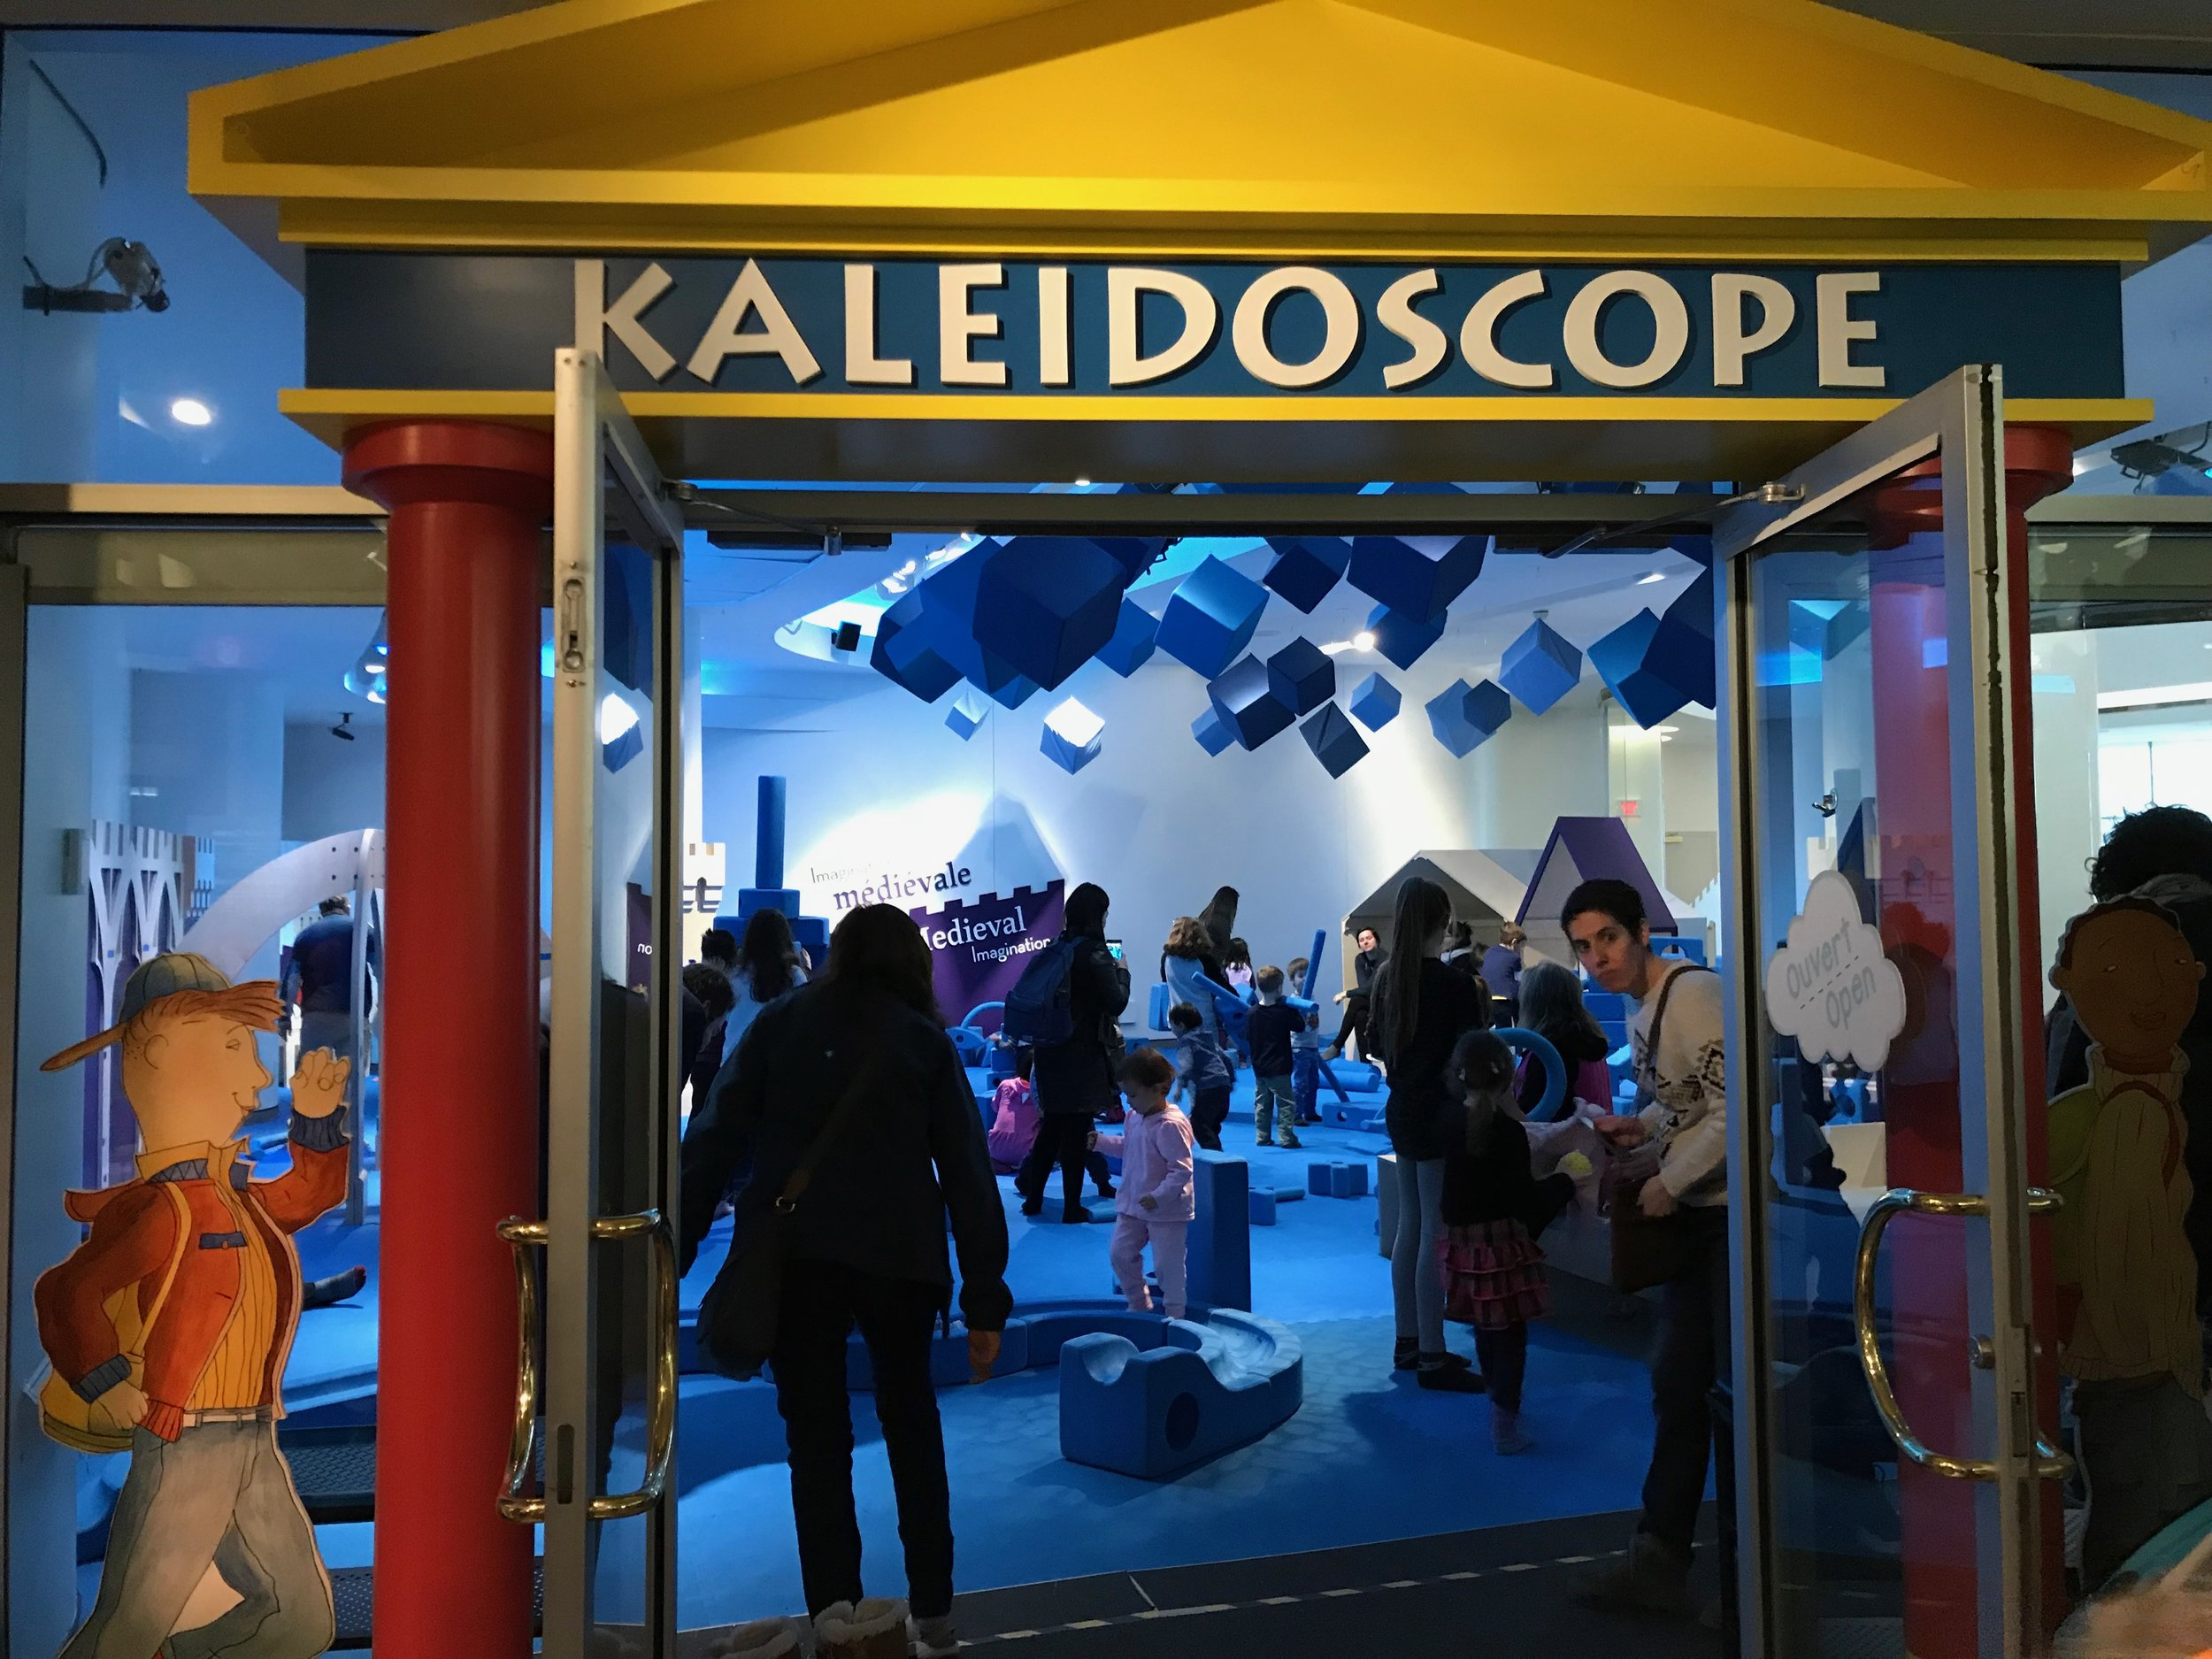 Kaleridoscope at the Canadian Children's Museum